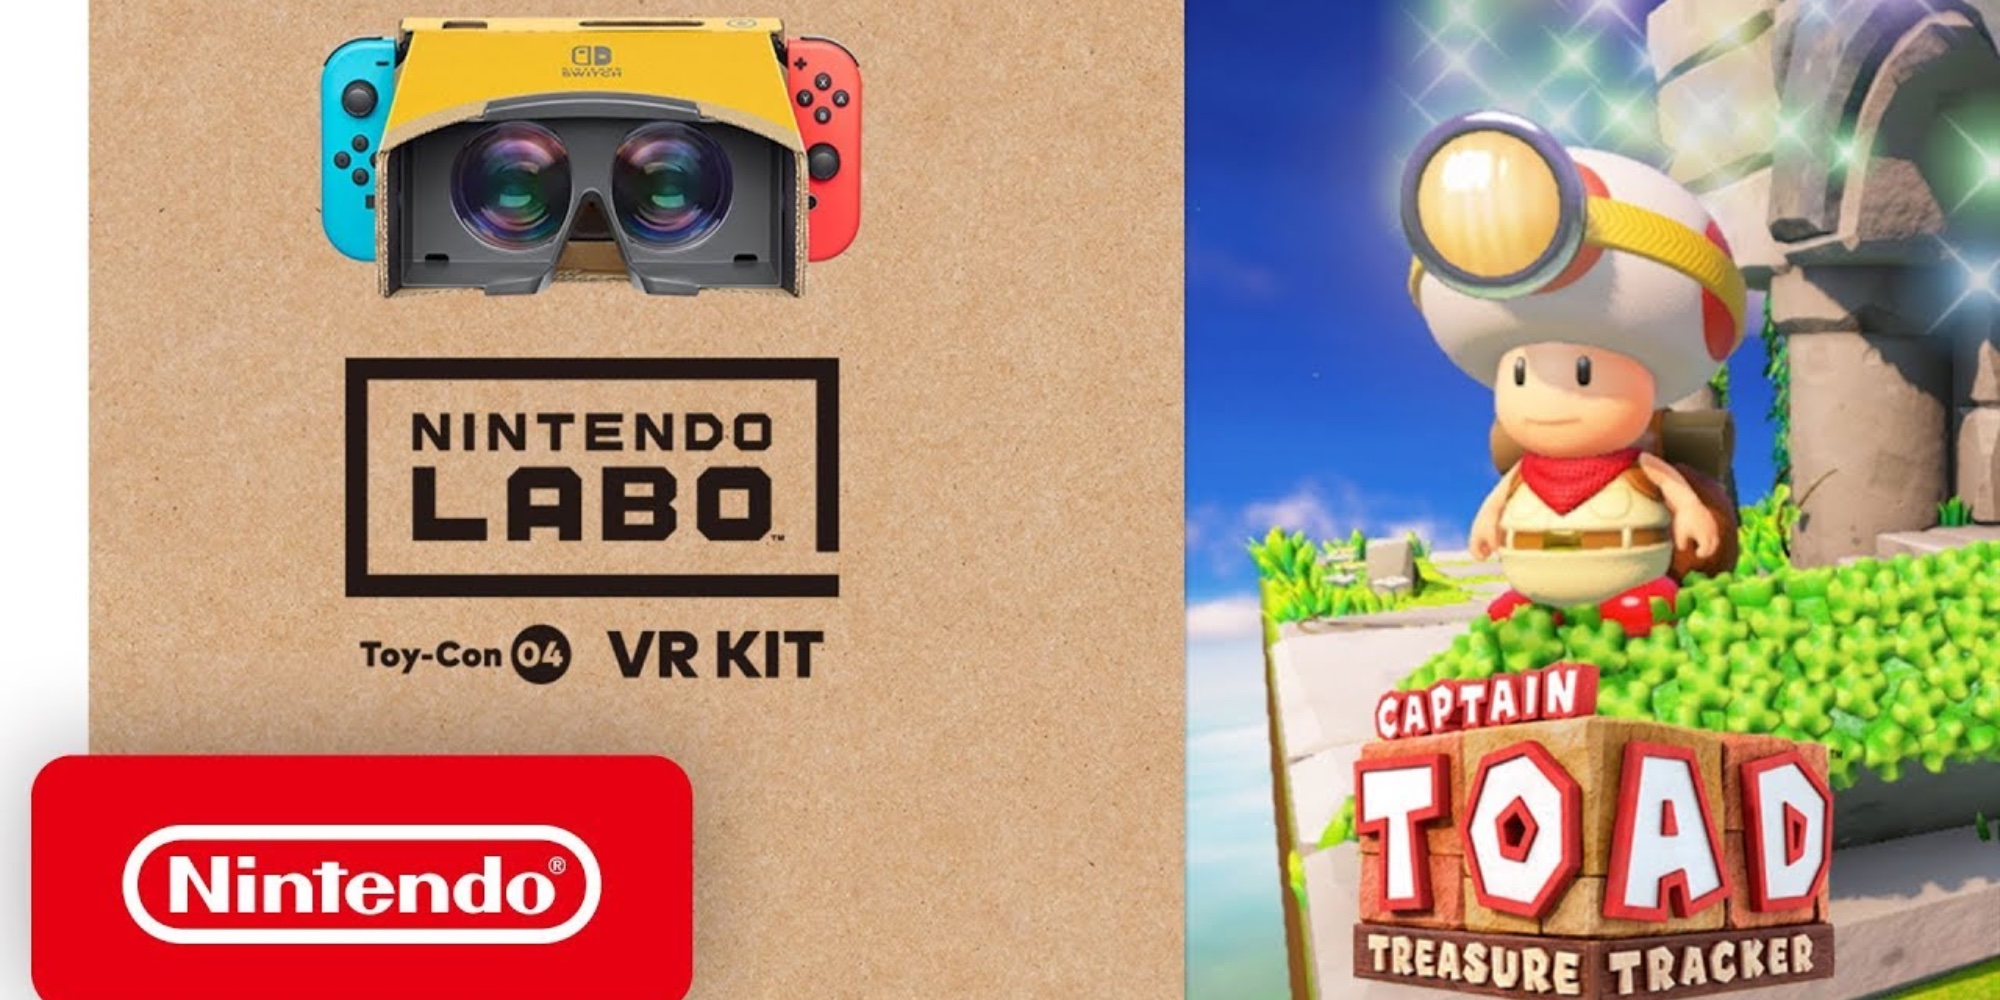 Captain Toad Labo Vr Comes To Nintendo Switch In New